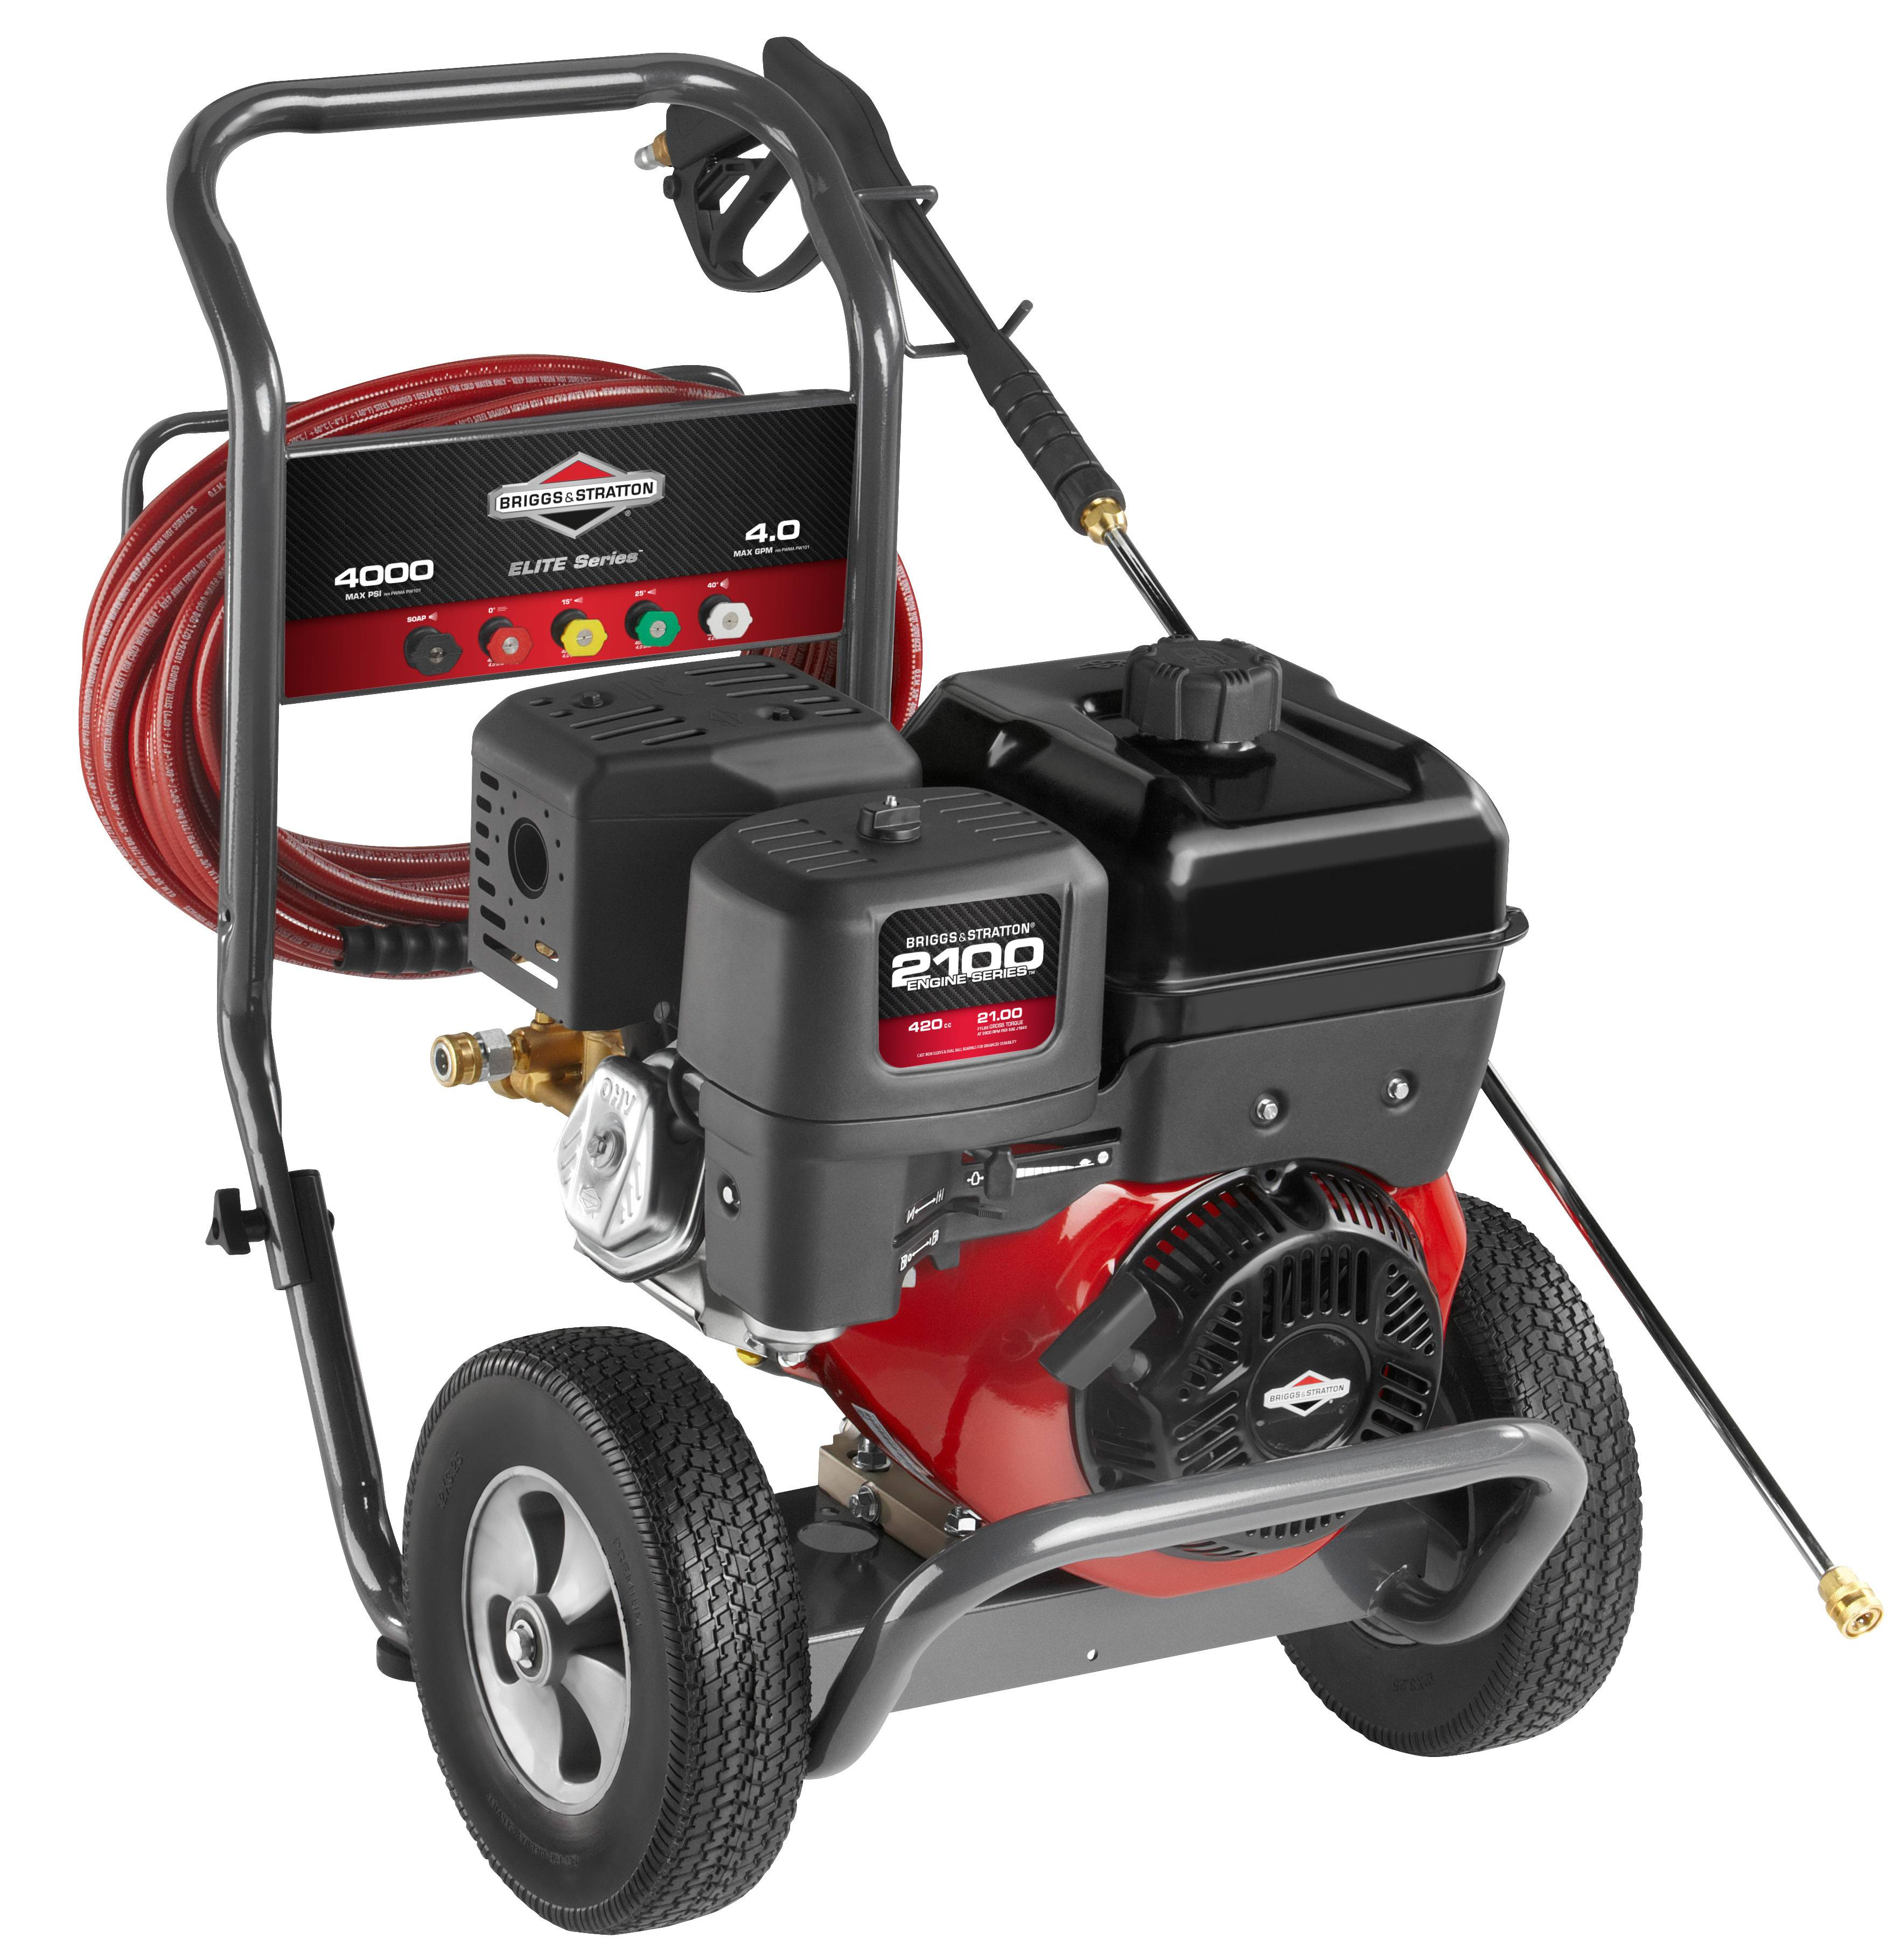 Briggs & Stratton 4000 PSI 4.0 GPM Elite Series Gas Press...